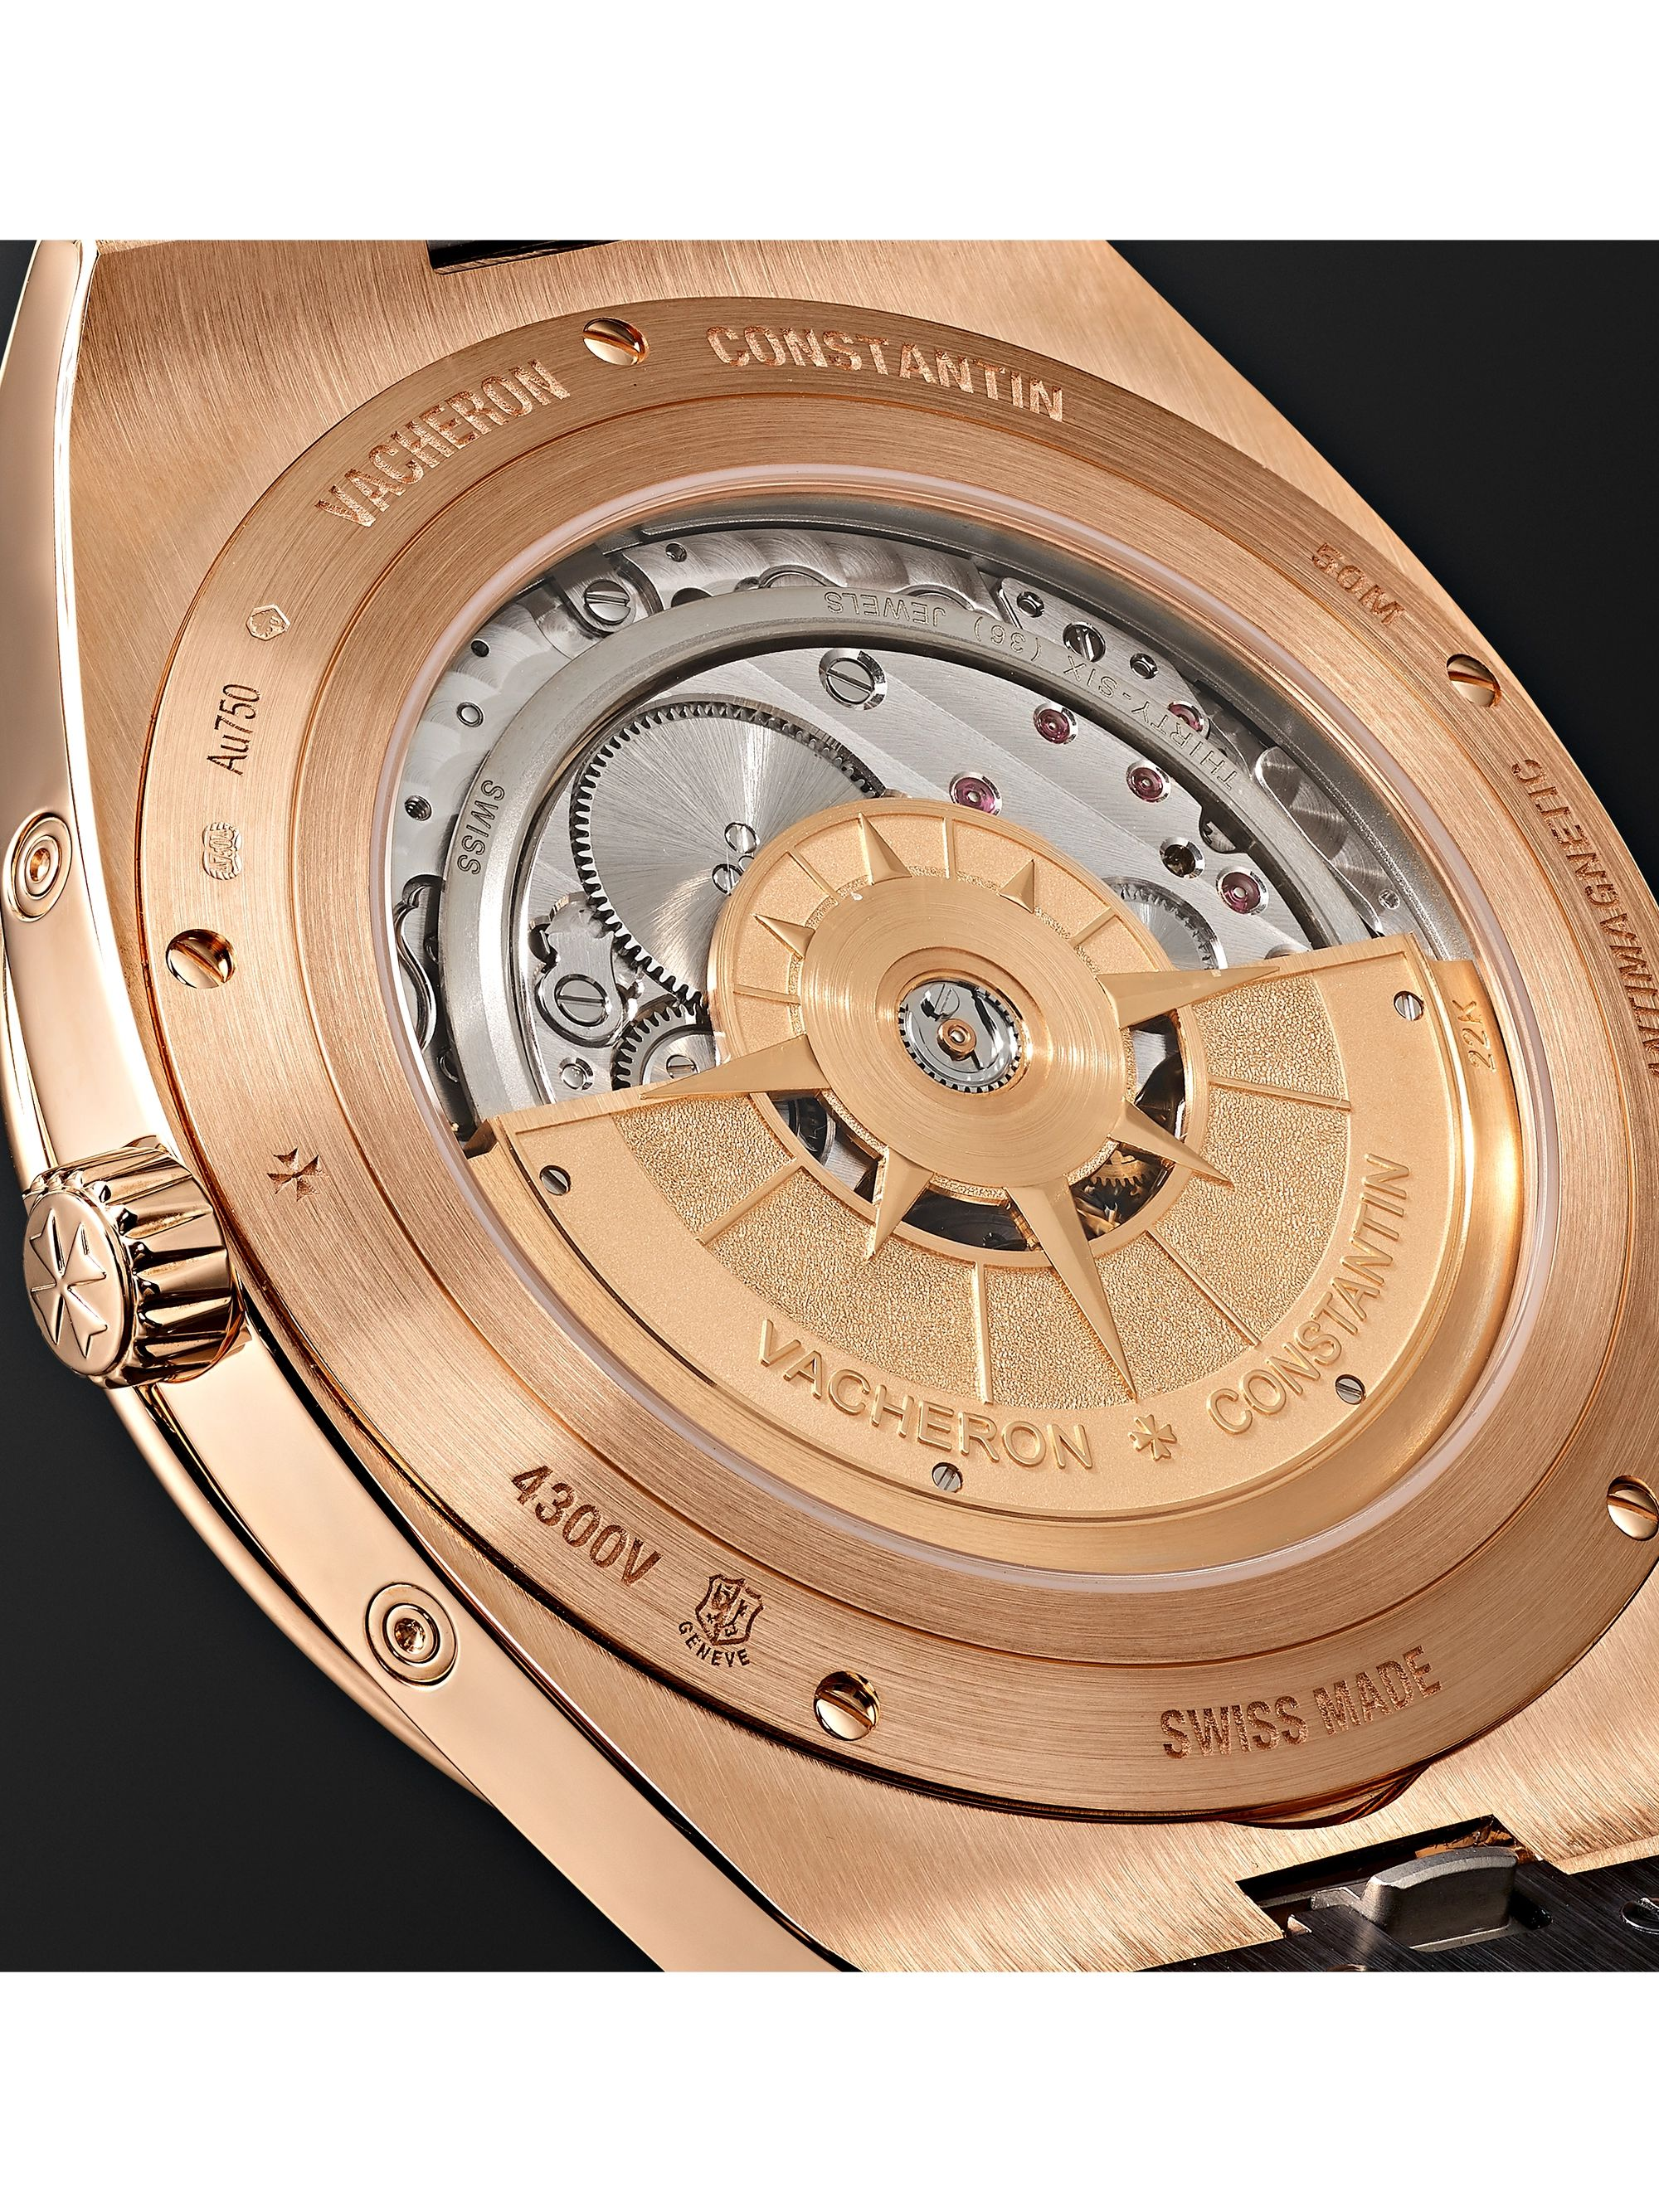 Vacheron Constantin Overseas Perpetual Calendar Ultra-Thin Automatic 41.5mm 18-Karat Pink Gold and Alligator Watch, Ref. No. 4300V/000R-B509